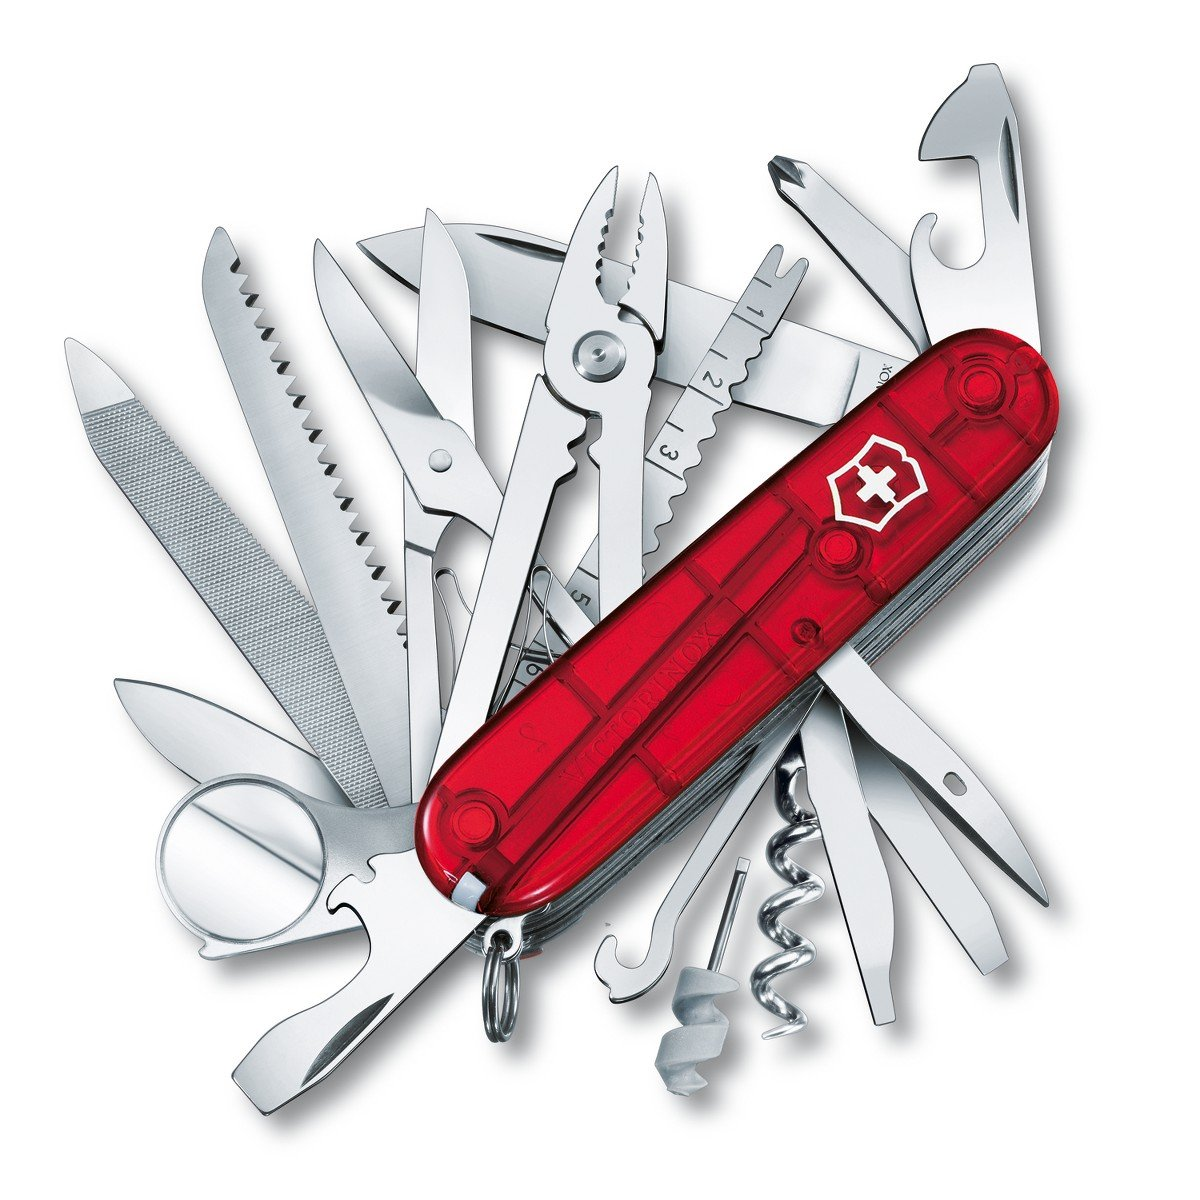 Victorinox Swiss Army Multi-Tool, SwissChamp Pocket Knife, Ruby